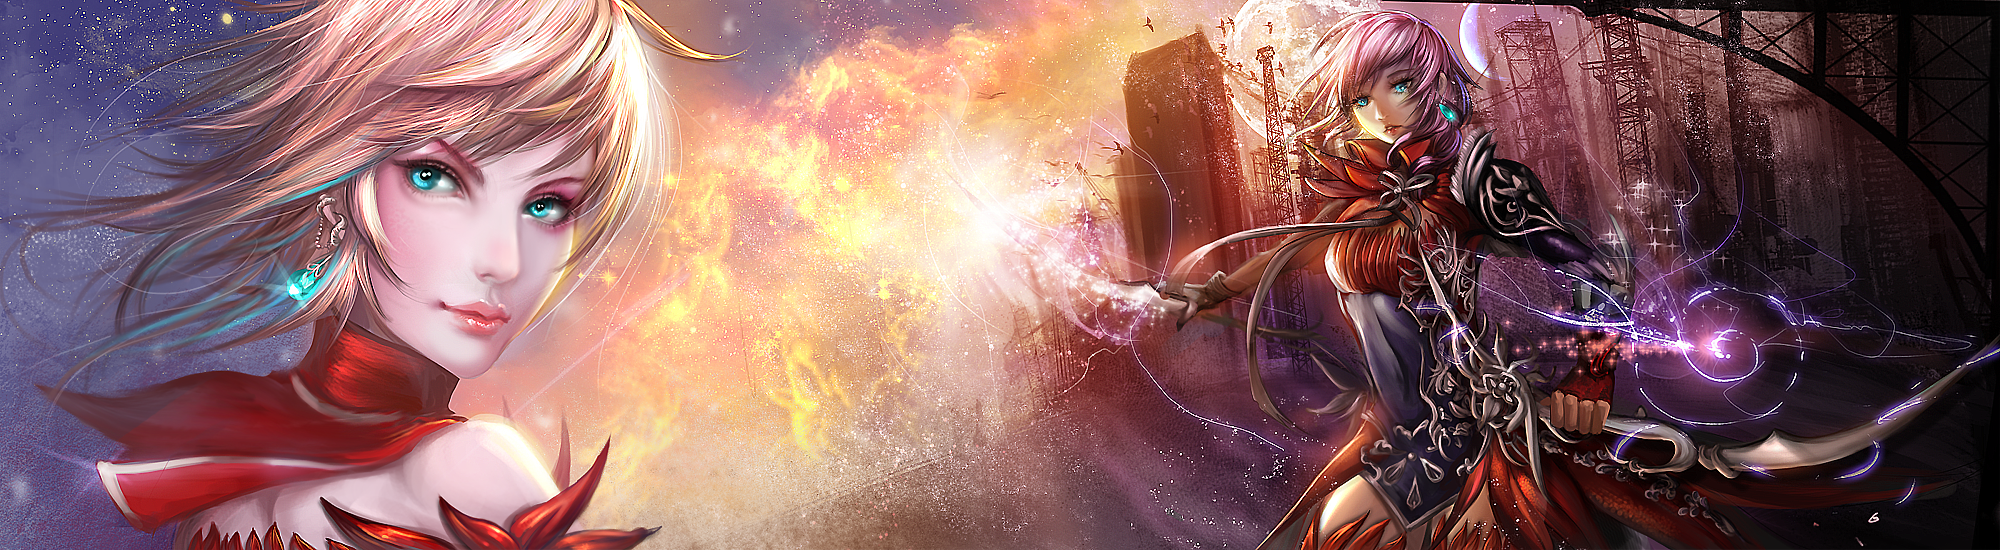 :: Fire Flower :: FFXIII Lightning Returns by Sangrde